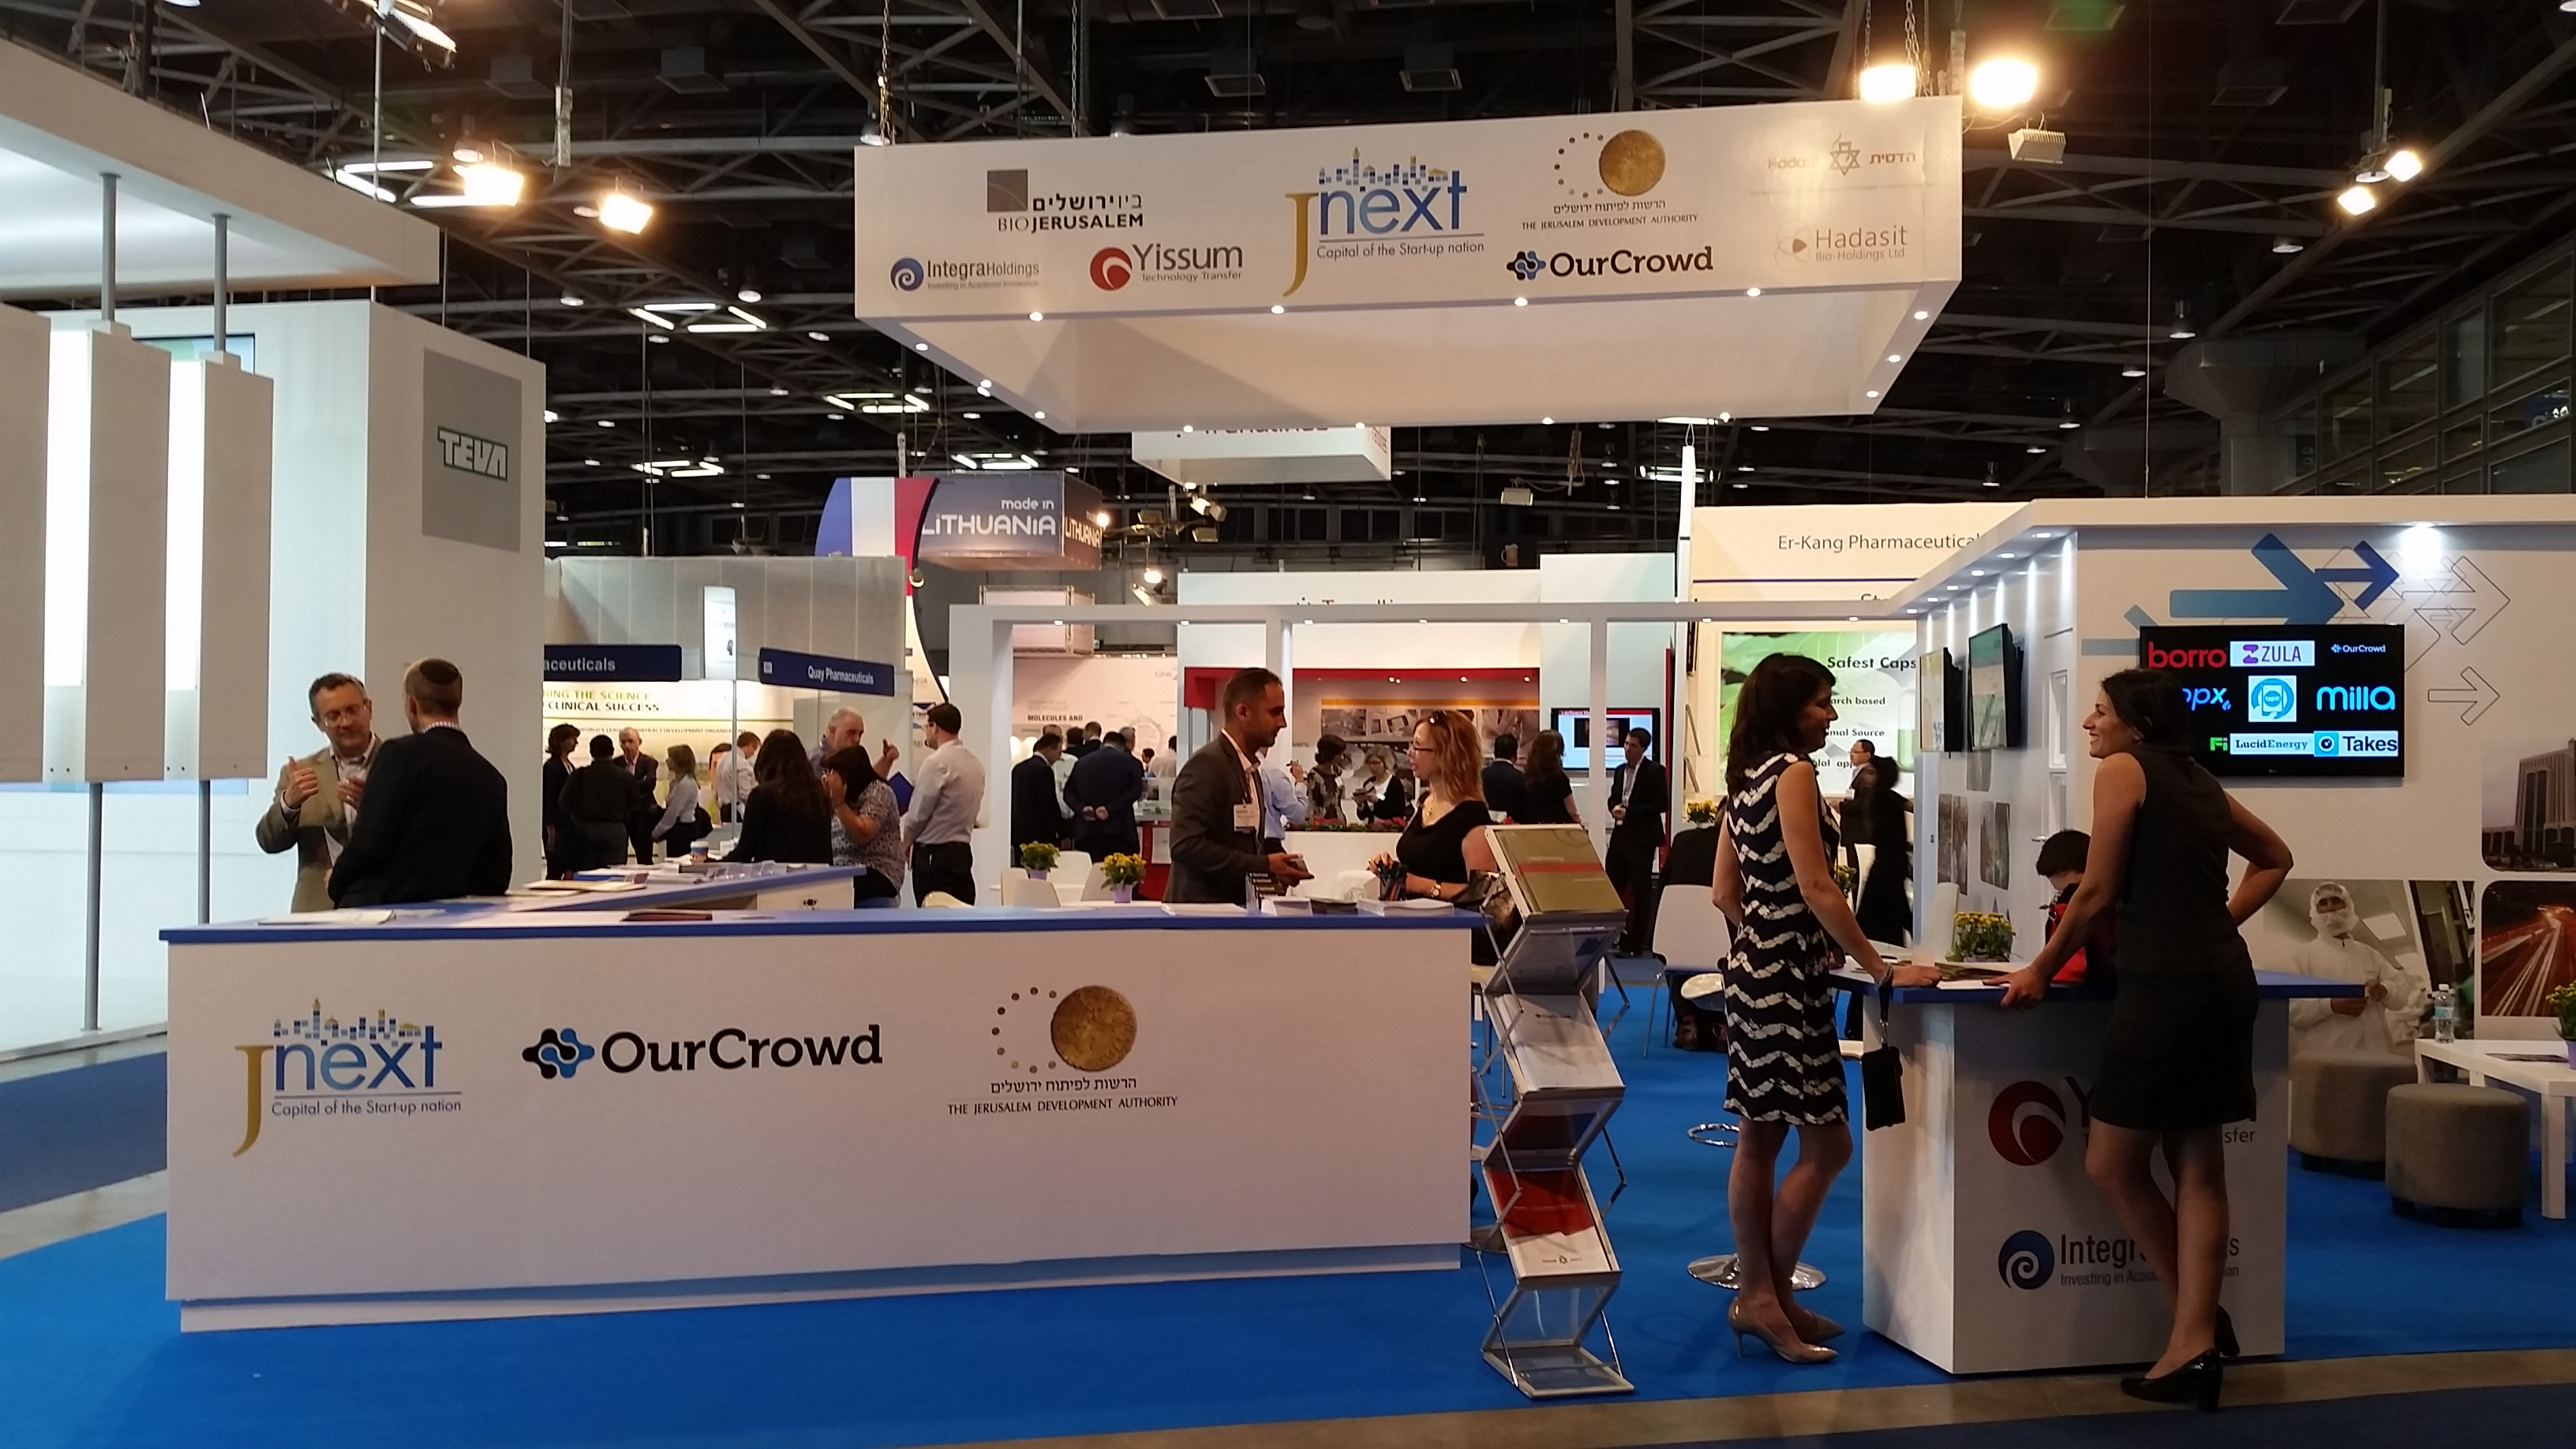 OurCrowd at BioMed 2015